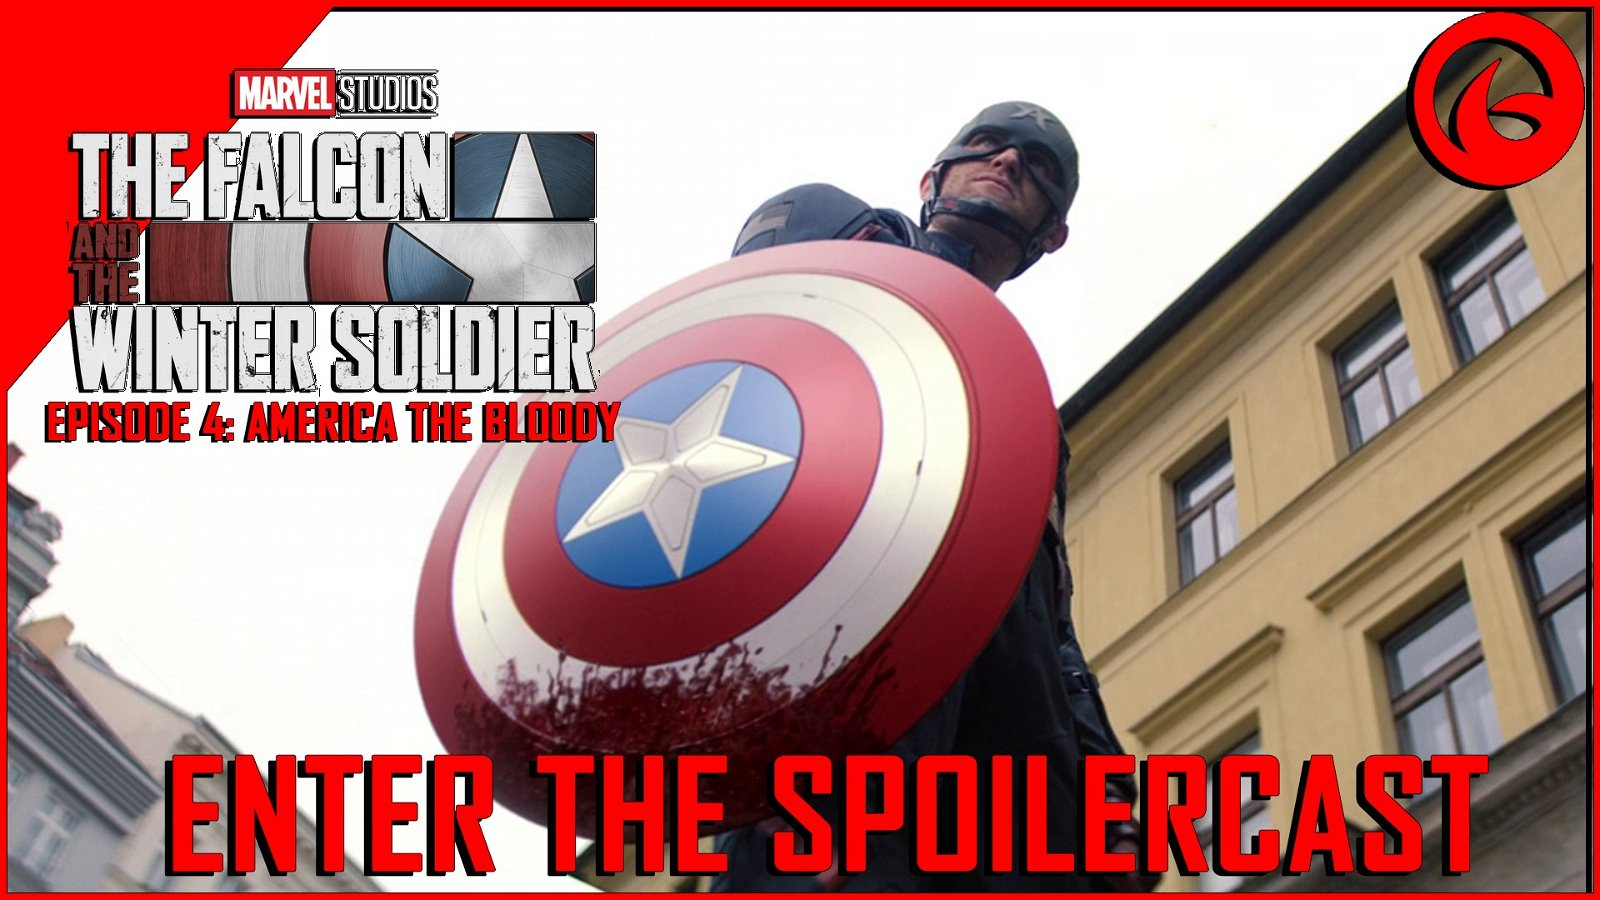 Enter the Spoilercast: The Falcon and The Winter Soldier Episode 4